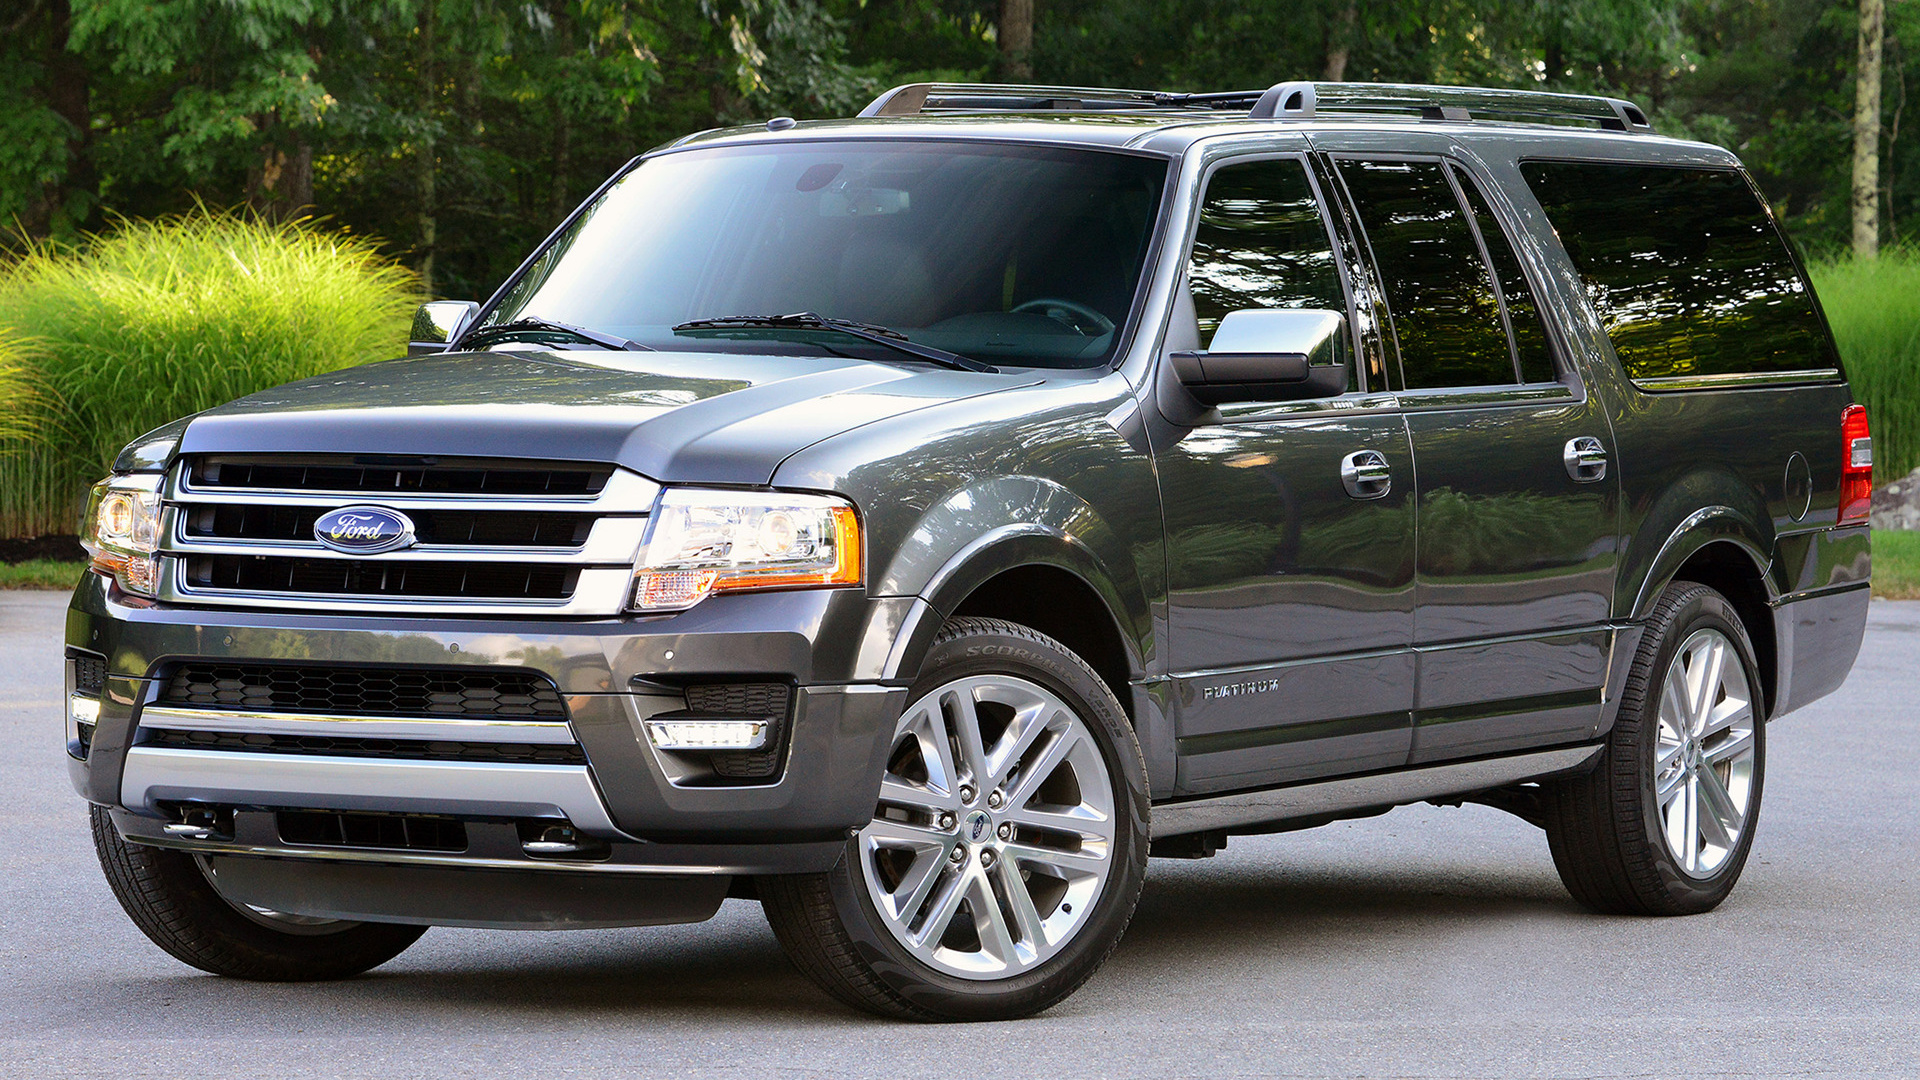 Ford Expedition EL Platinum (2015) Wallpapers and HD Images - Car Pixel